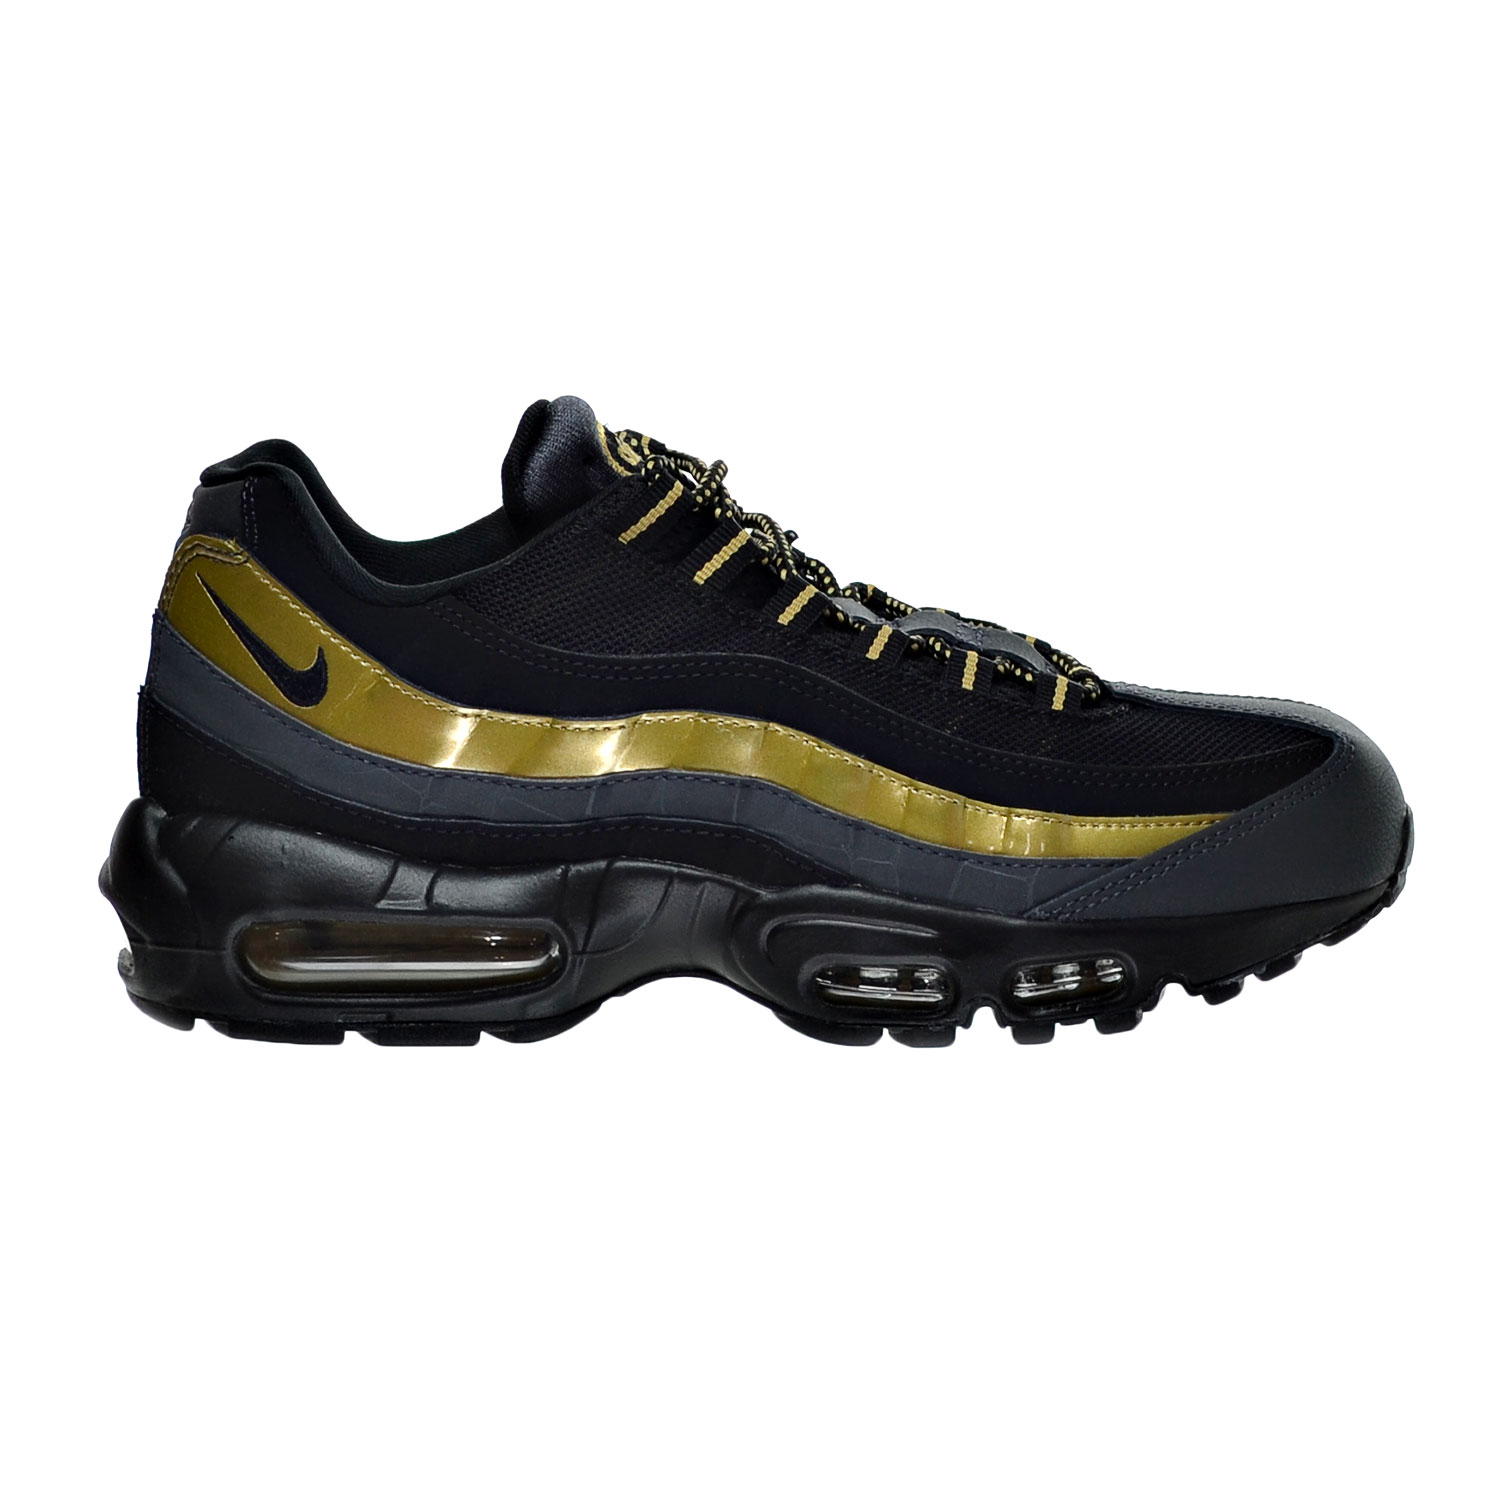 new product e7c90 ff0ce ... coupon nike nike air max 95 prm mens shoes black metallic gold  anthracite 538416 007 walmart ...